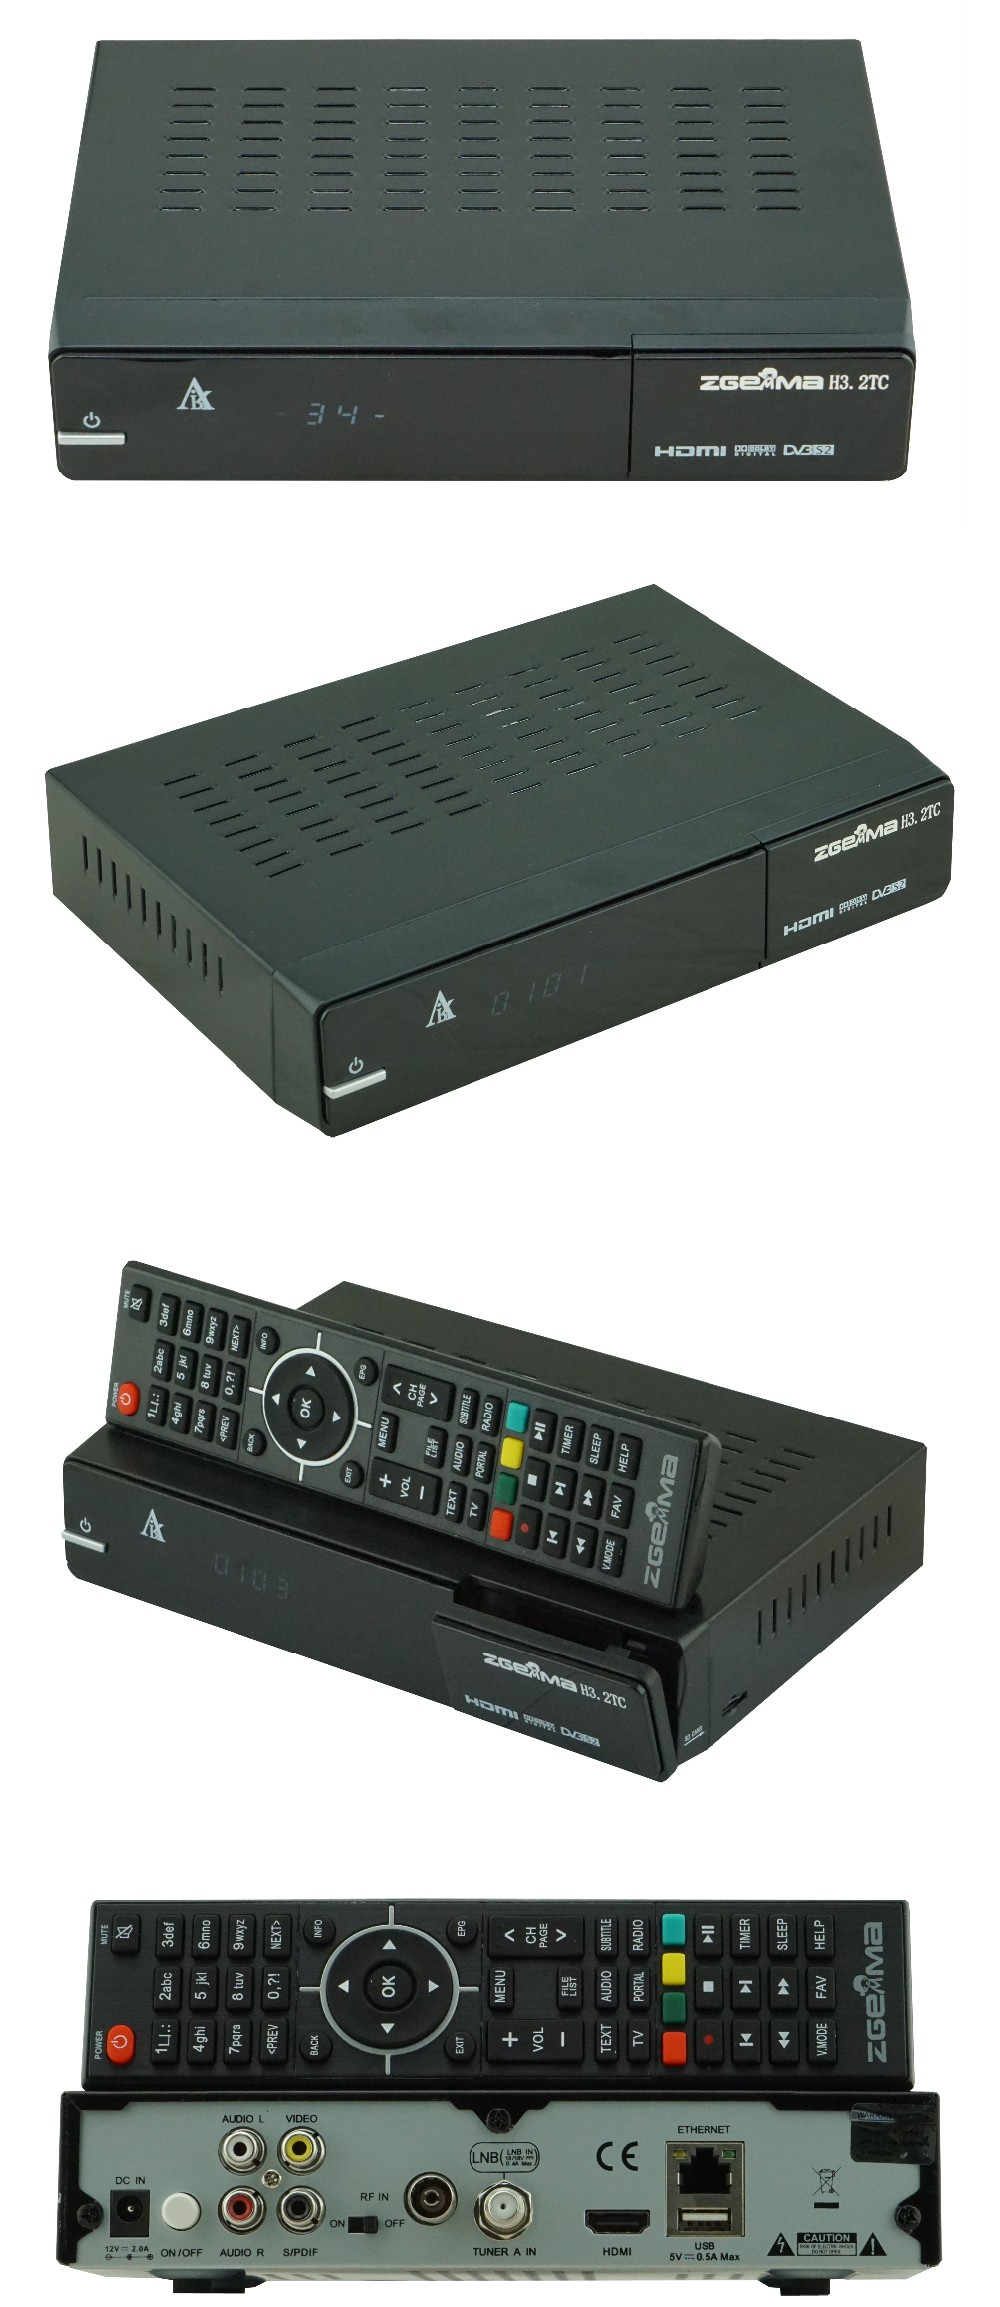 2017 New Version Combo Receiver Zgemma H3.2TC Dual Core Linux OS Enigma2 with DVB-S2+2*DVB-T2/C Dual Tuners